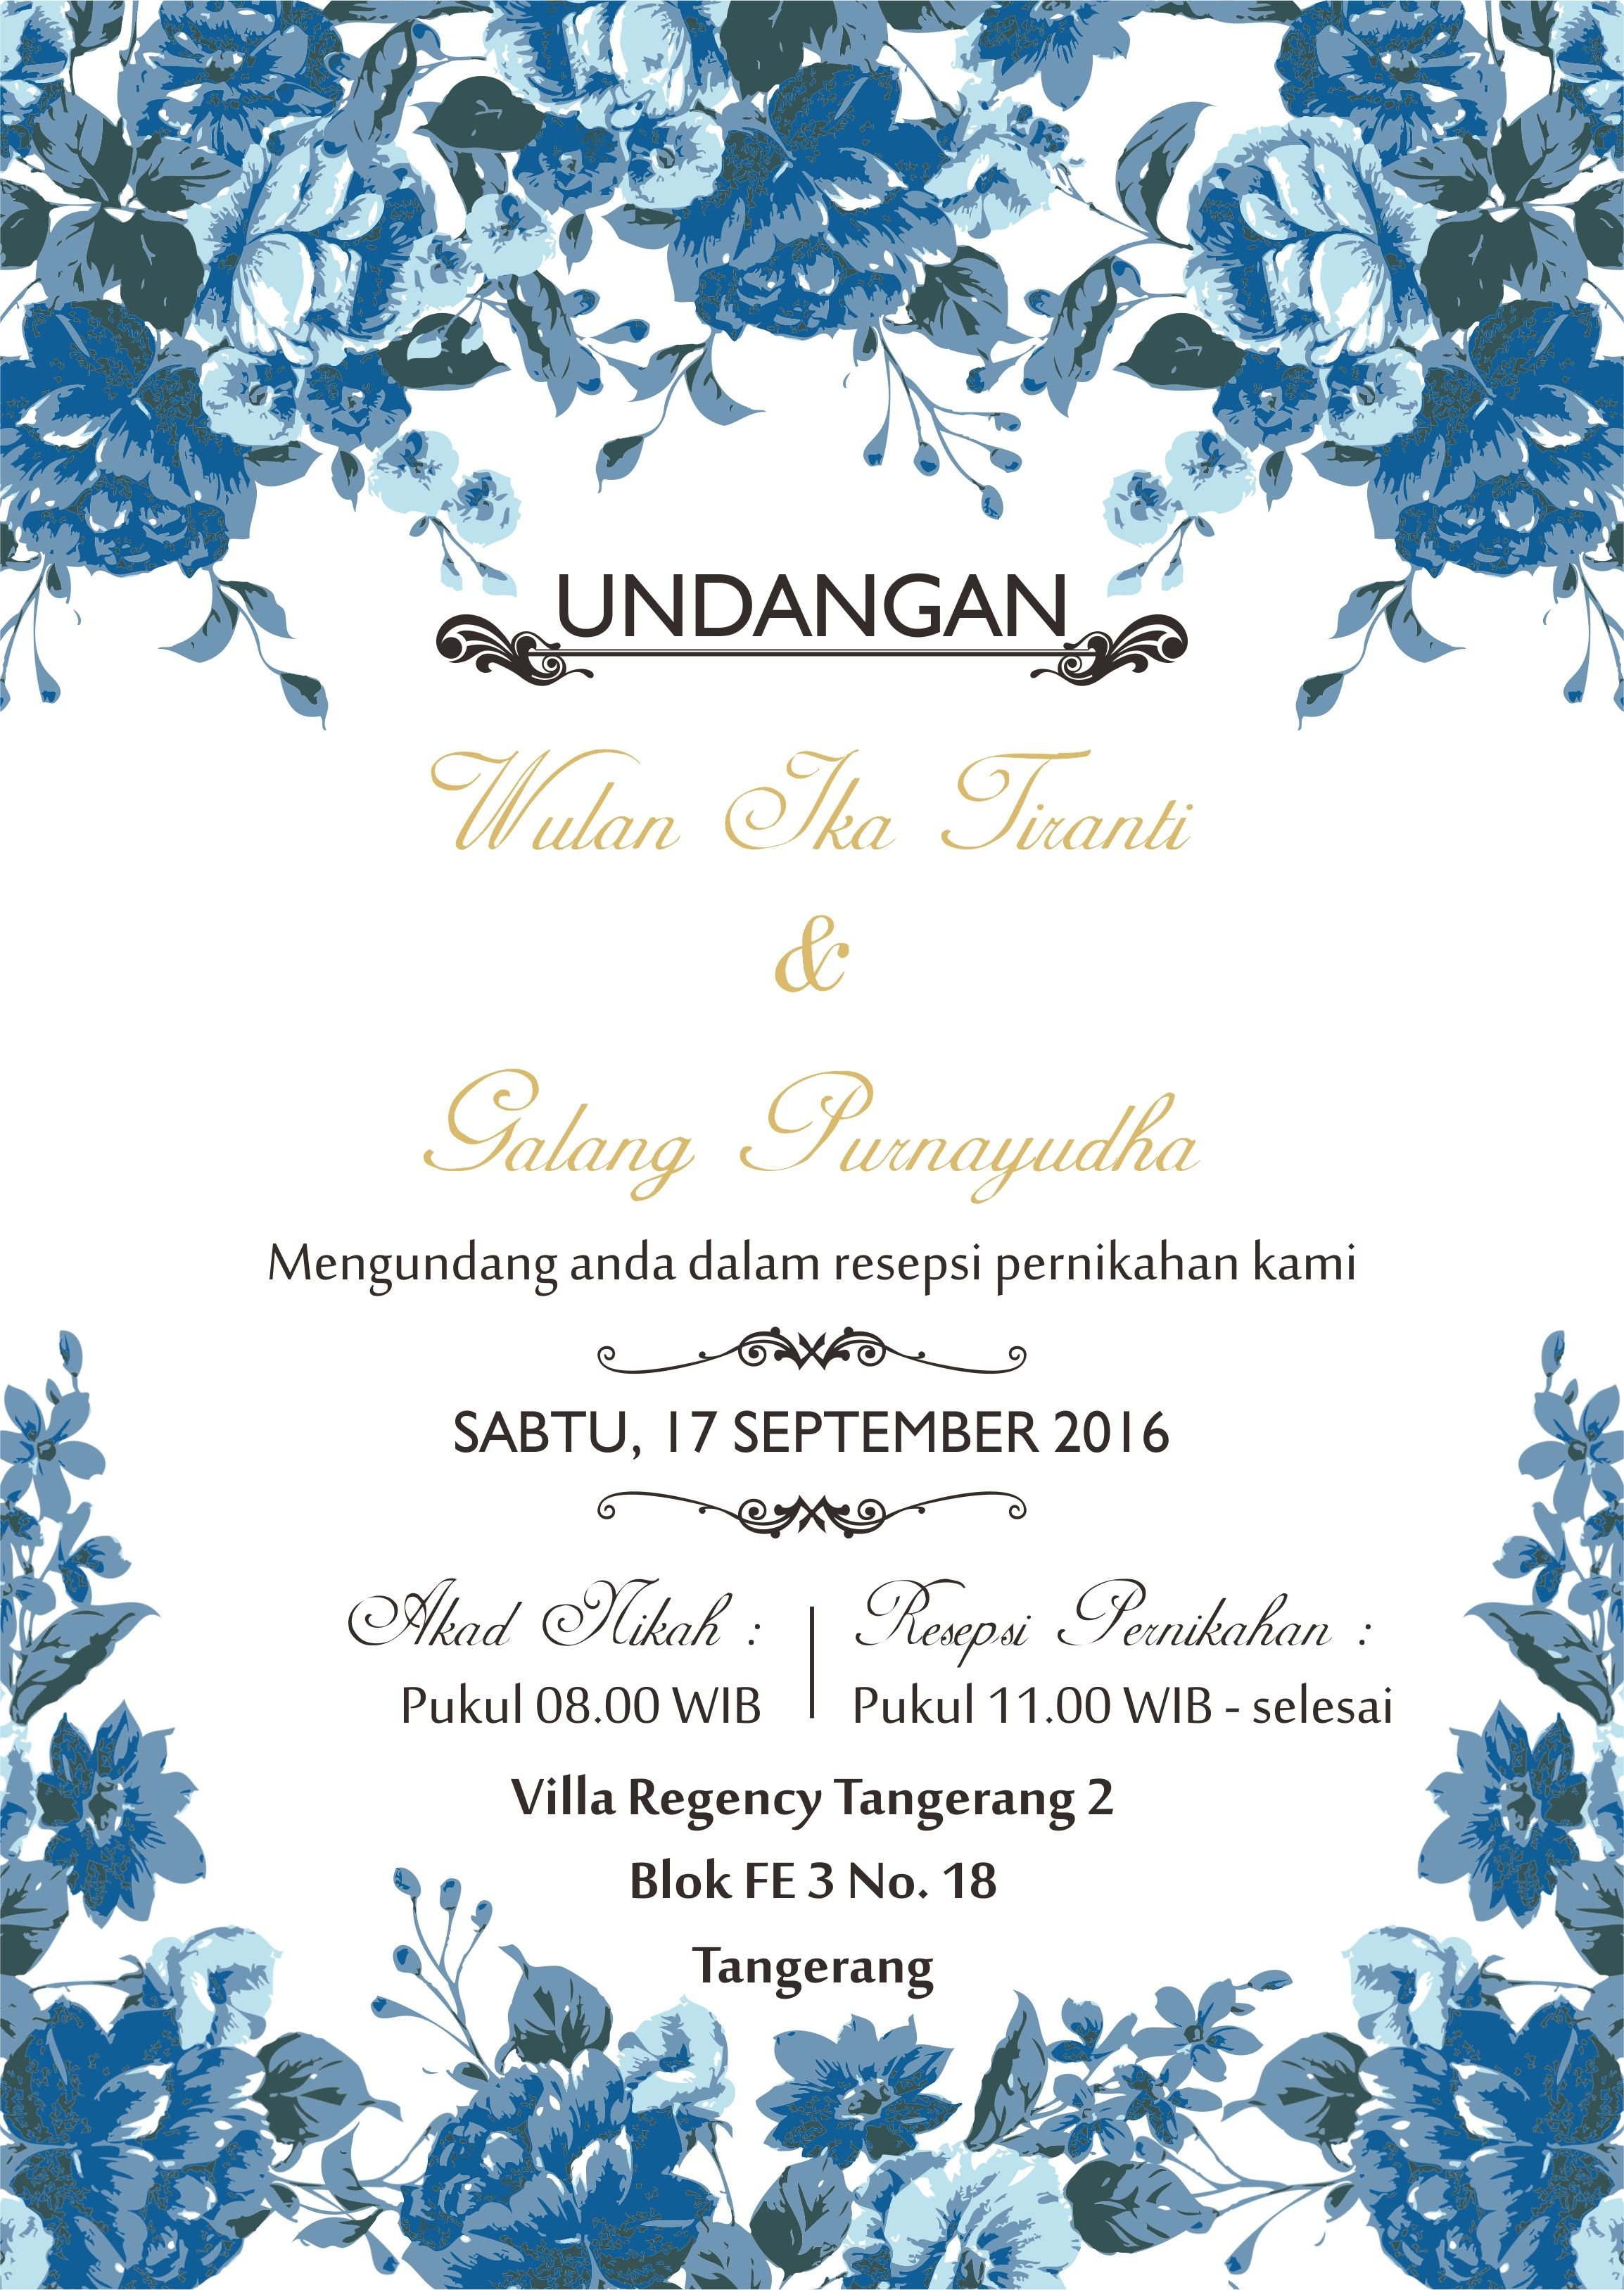 Online Wedding Invitation E Invitation Wedding Inviation Kartu Undangan Pernikahan Kartu Pernikahan Pernikahan